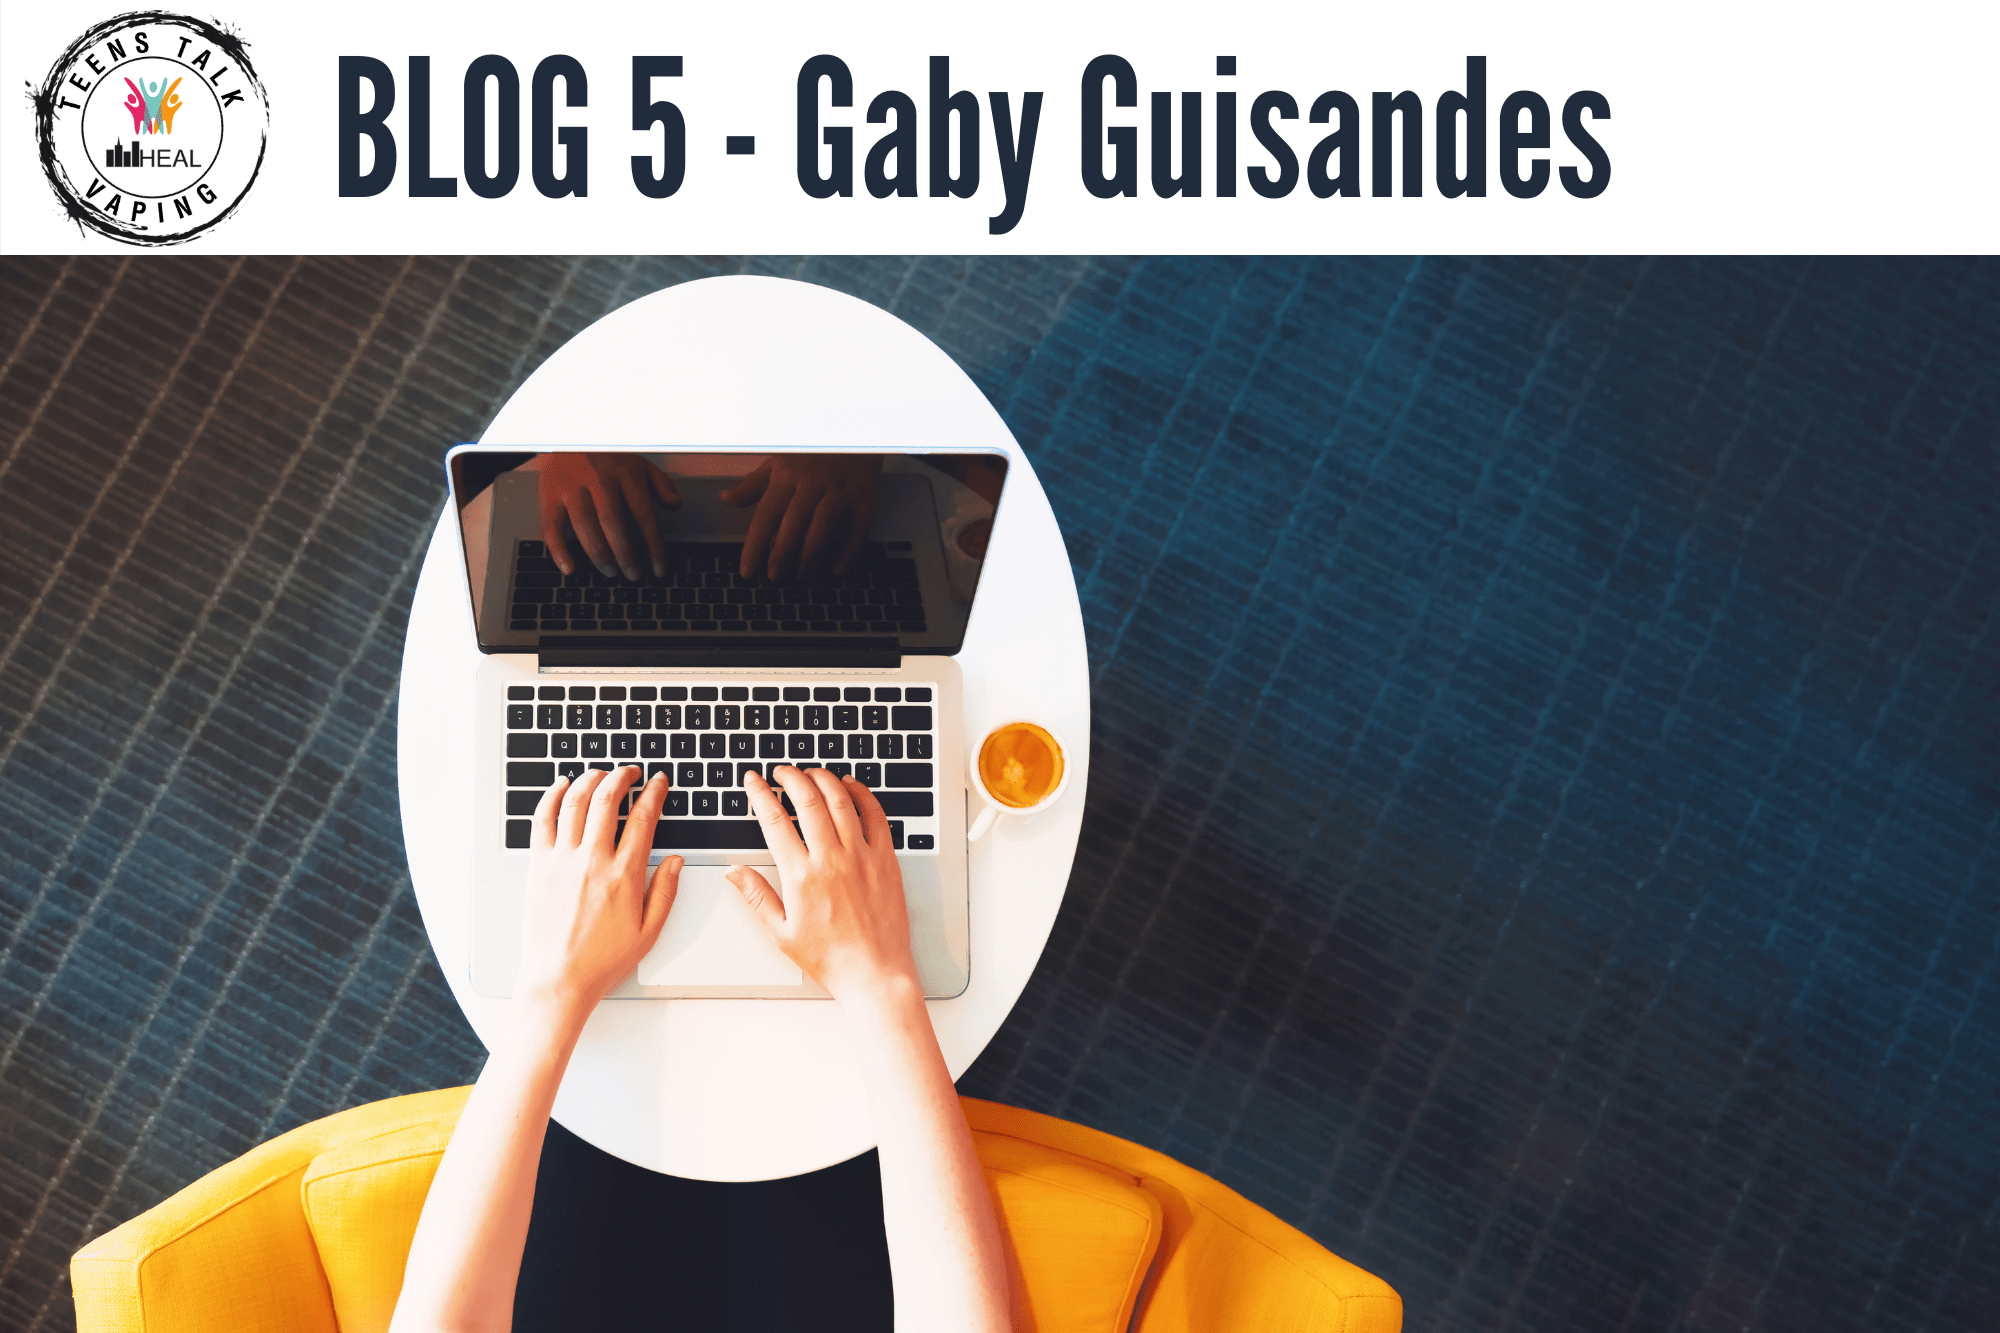 TTV Blog 5 – I've always wanted to meet and learn from real researchers by Gaby Guisandes